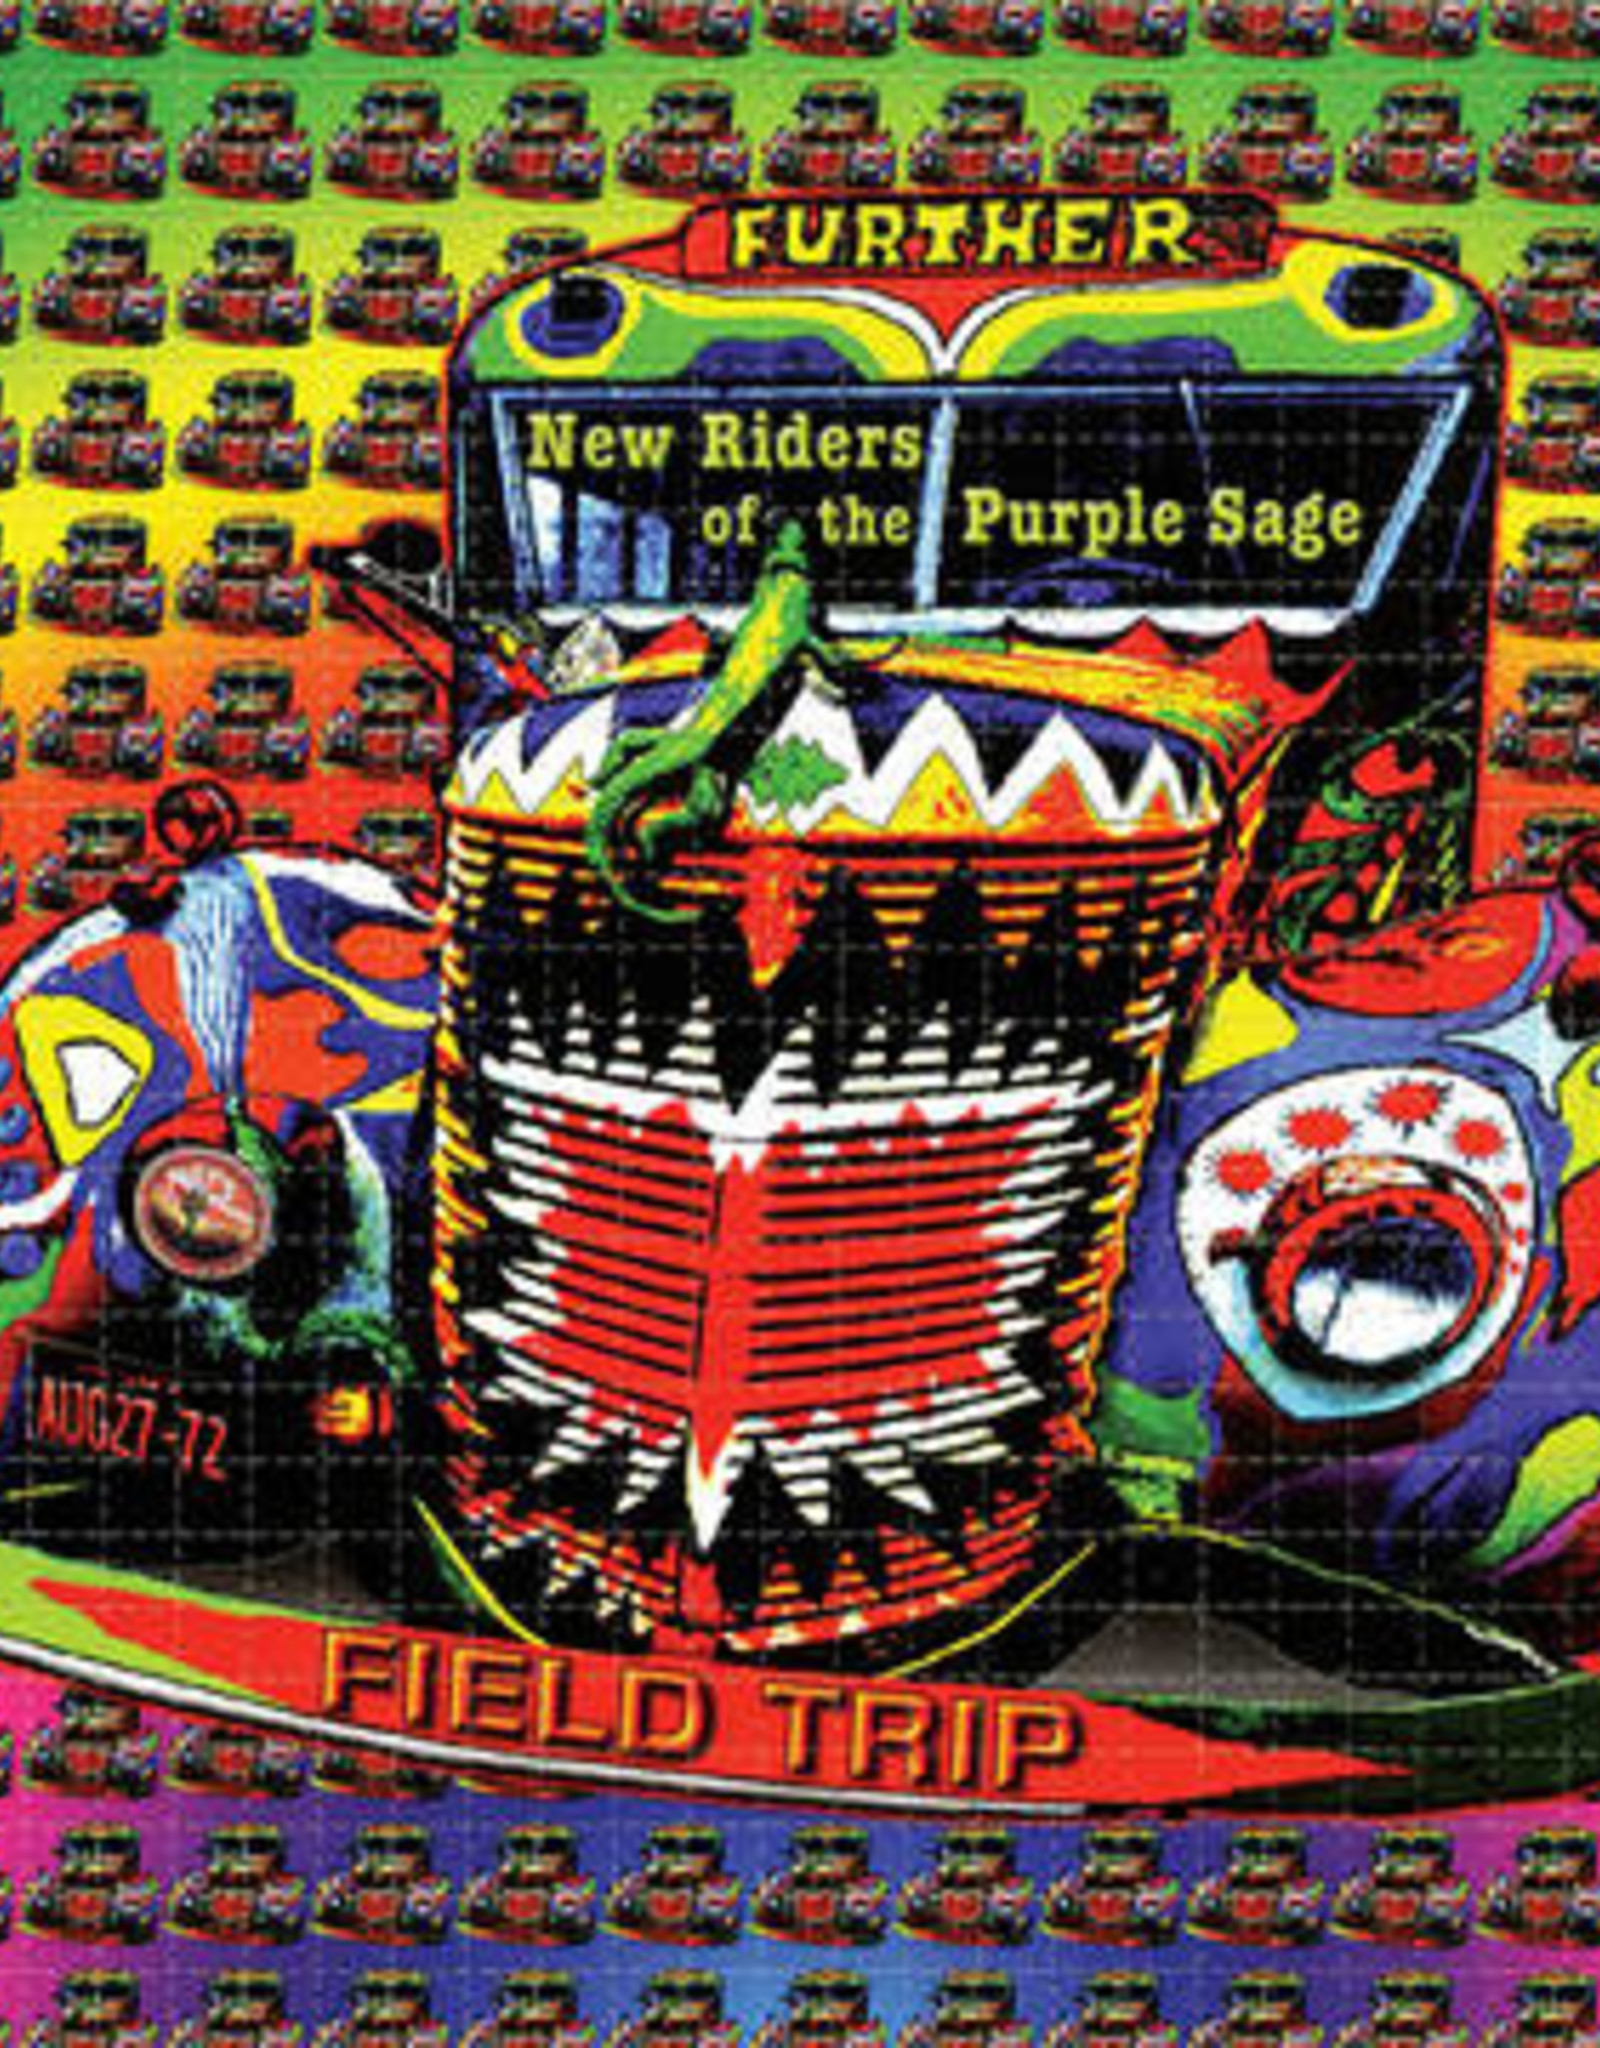 New Riders Of The Purple Sage - Field Trip (RSD 2020)